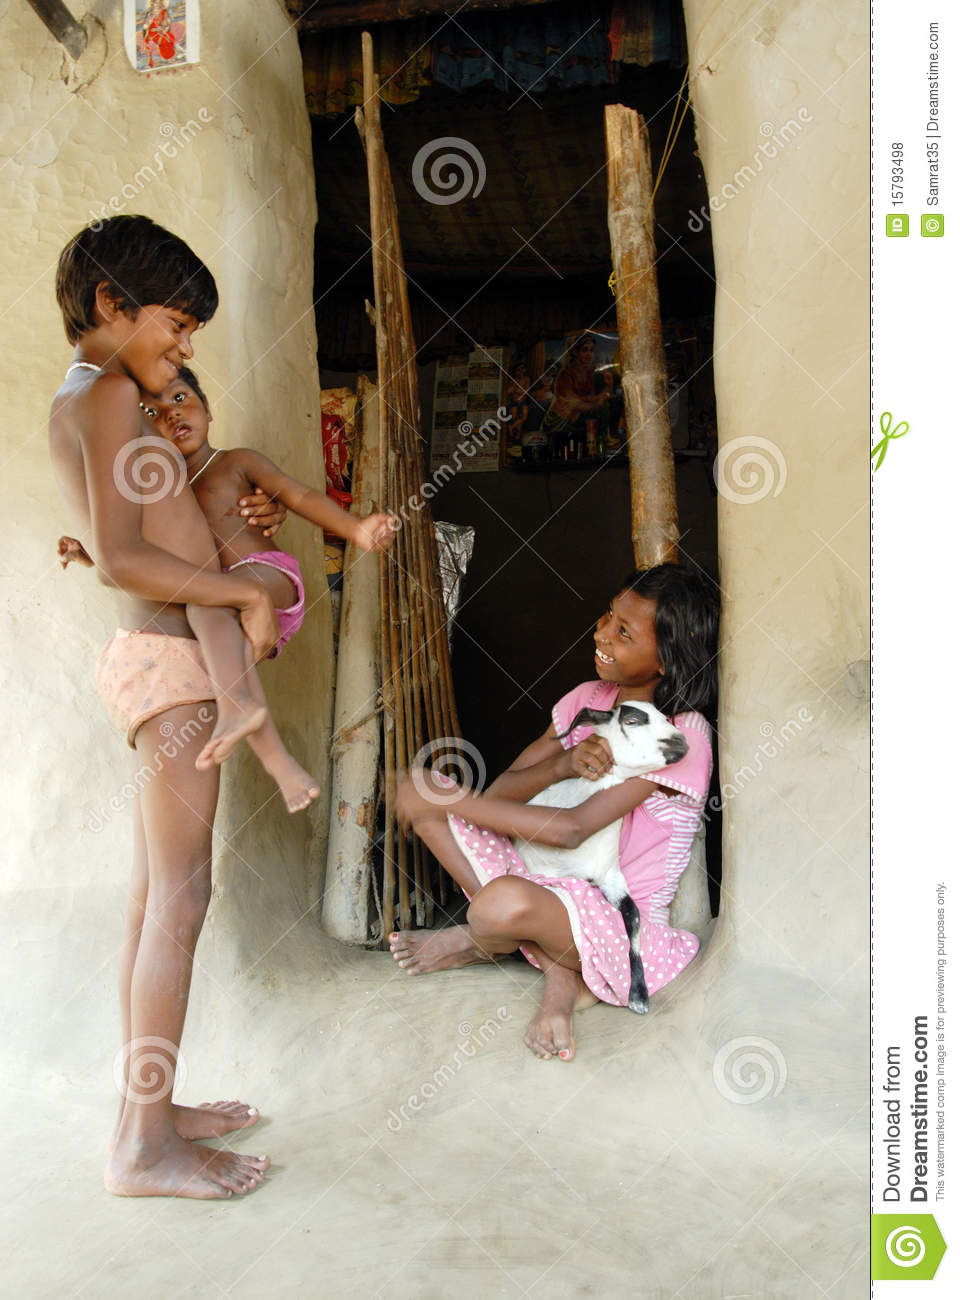 Indian Village Girl Editorial Stock Photo Image Of Aria - 15793498-1458